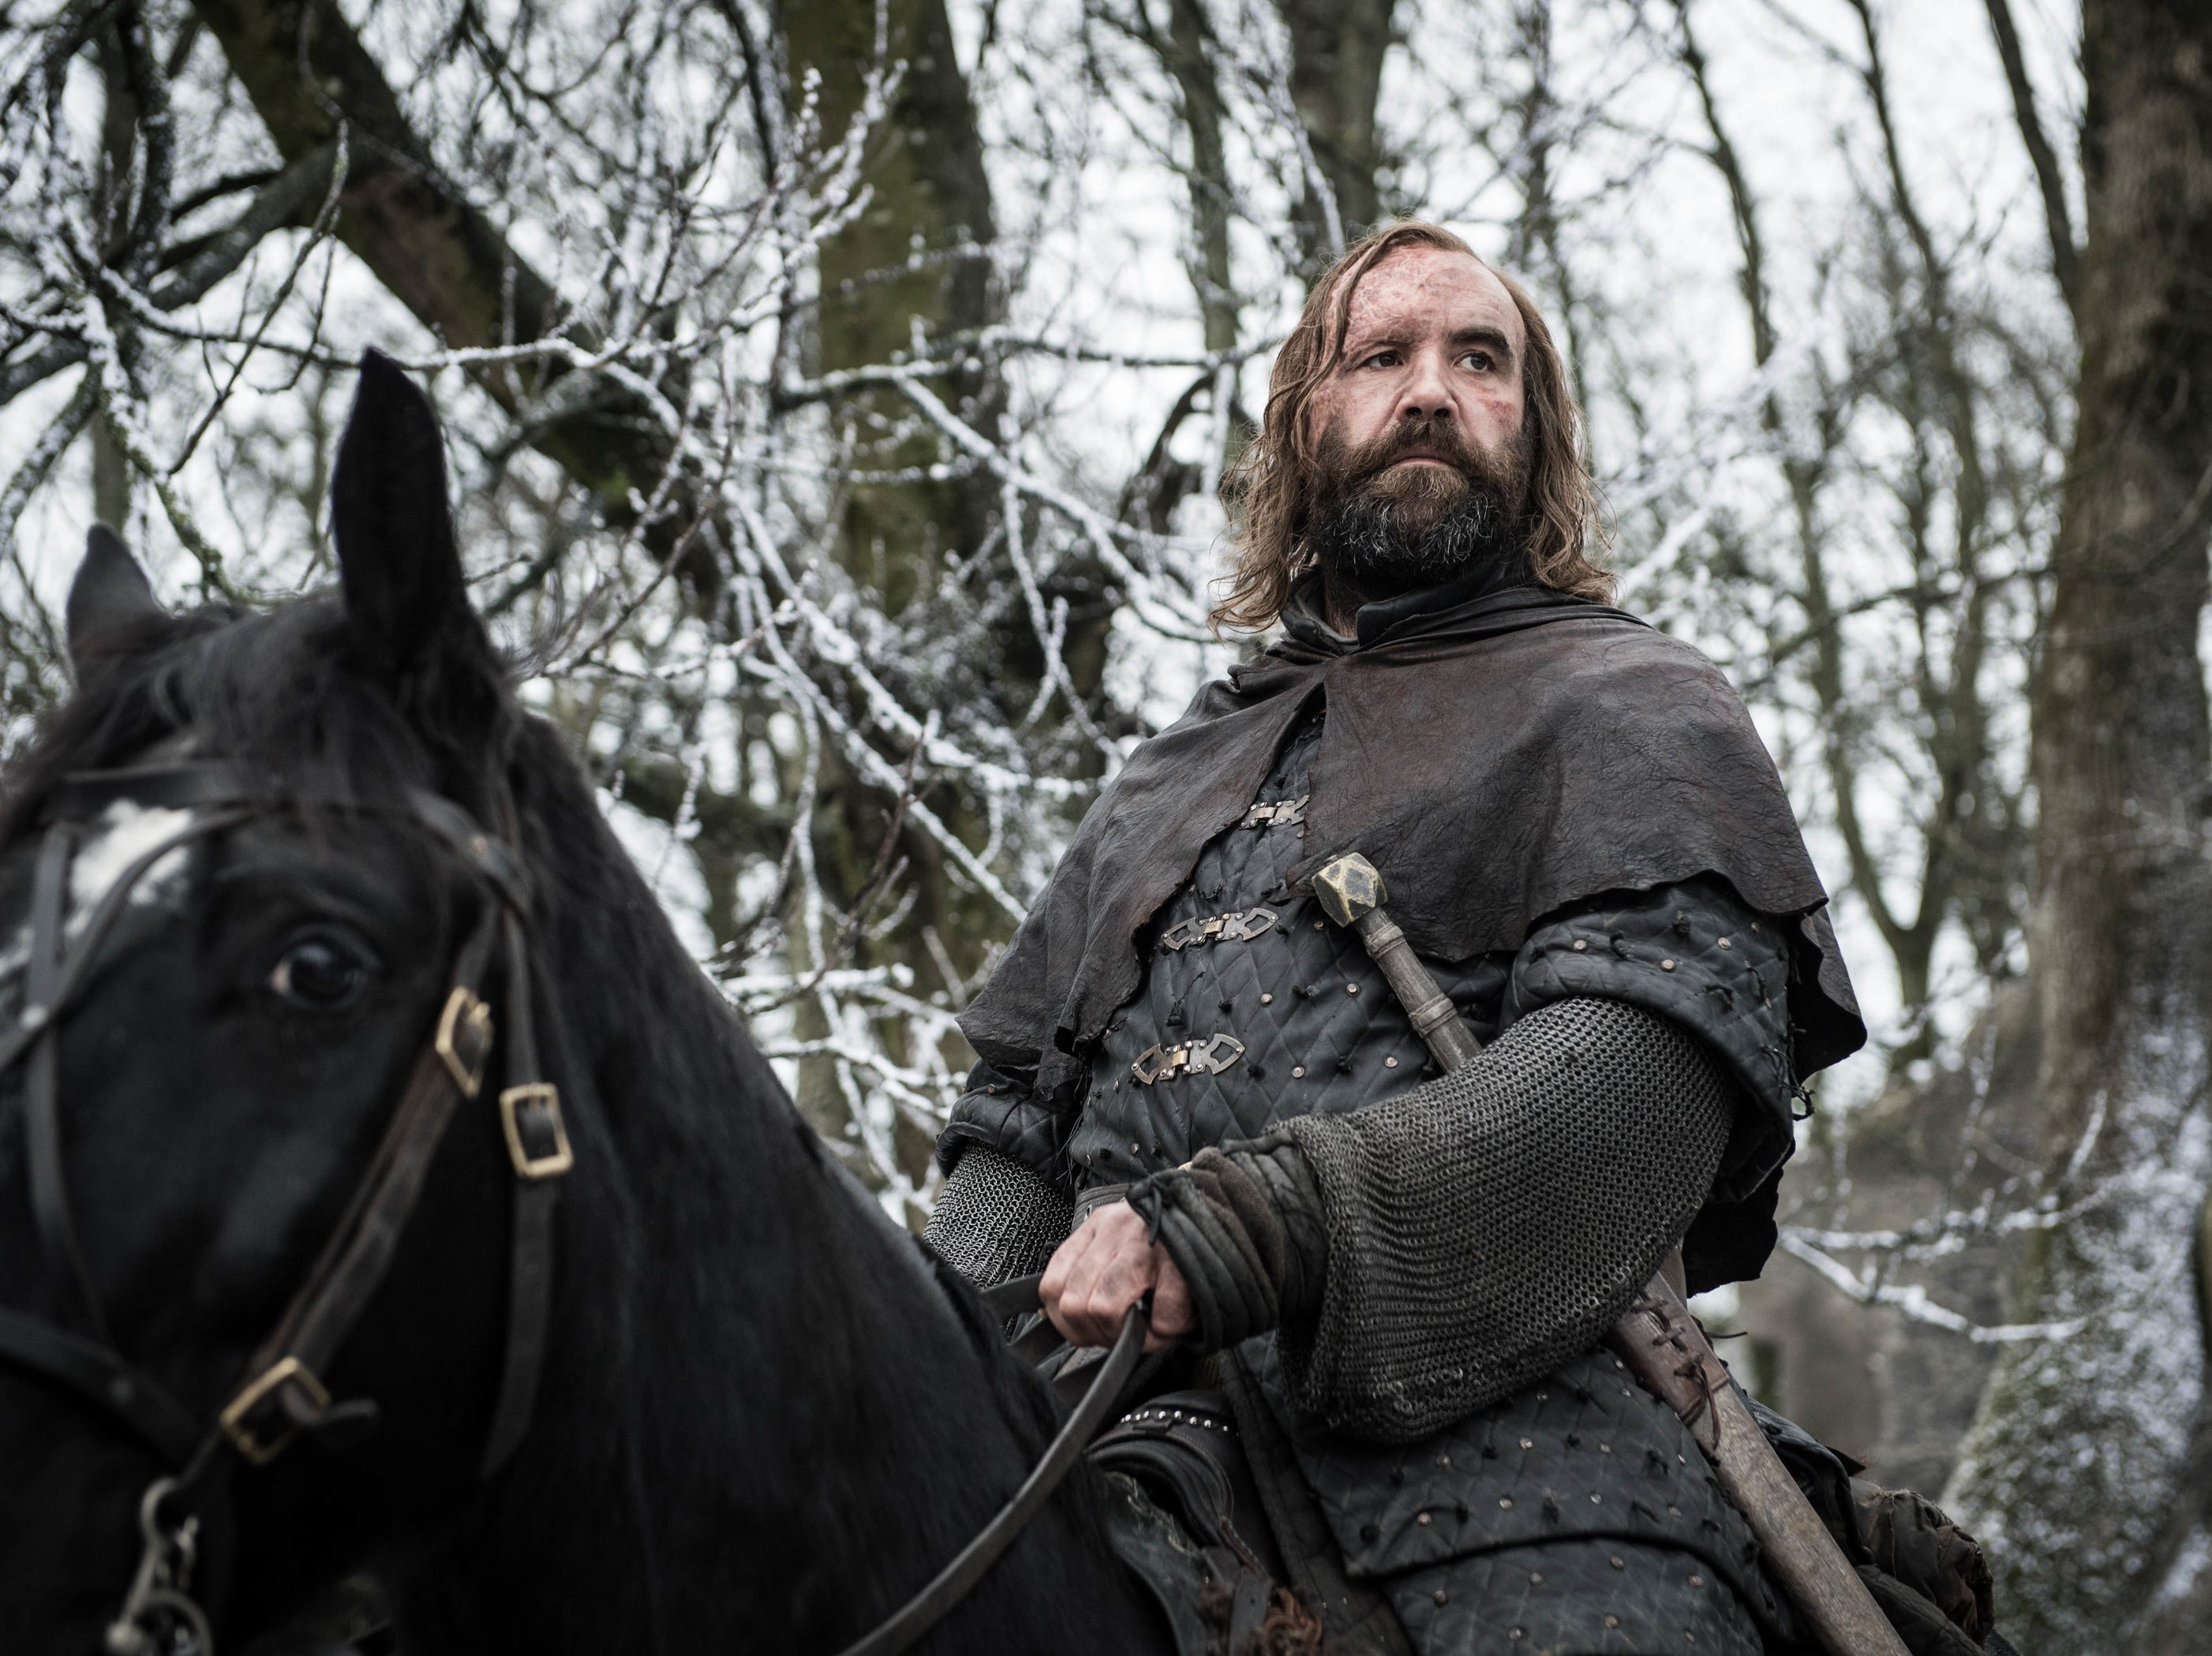 The Hound (Rory McCann) arrives at Winterfell.